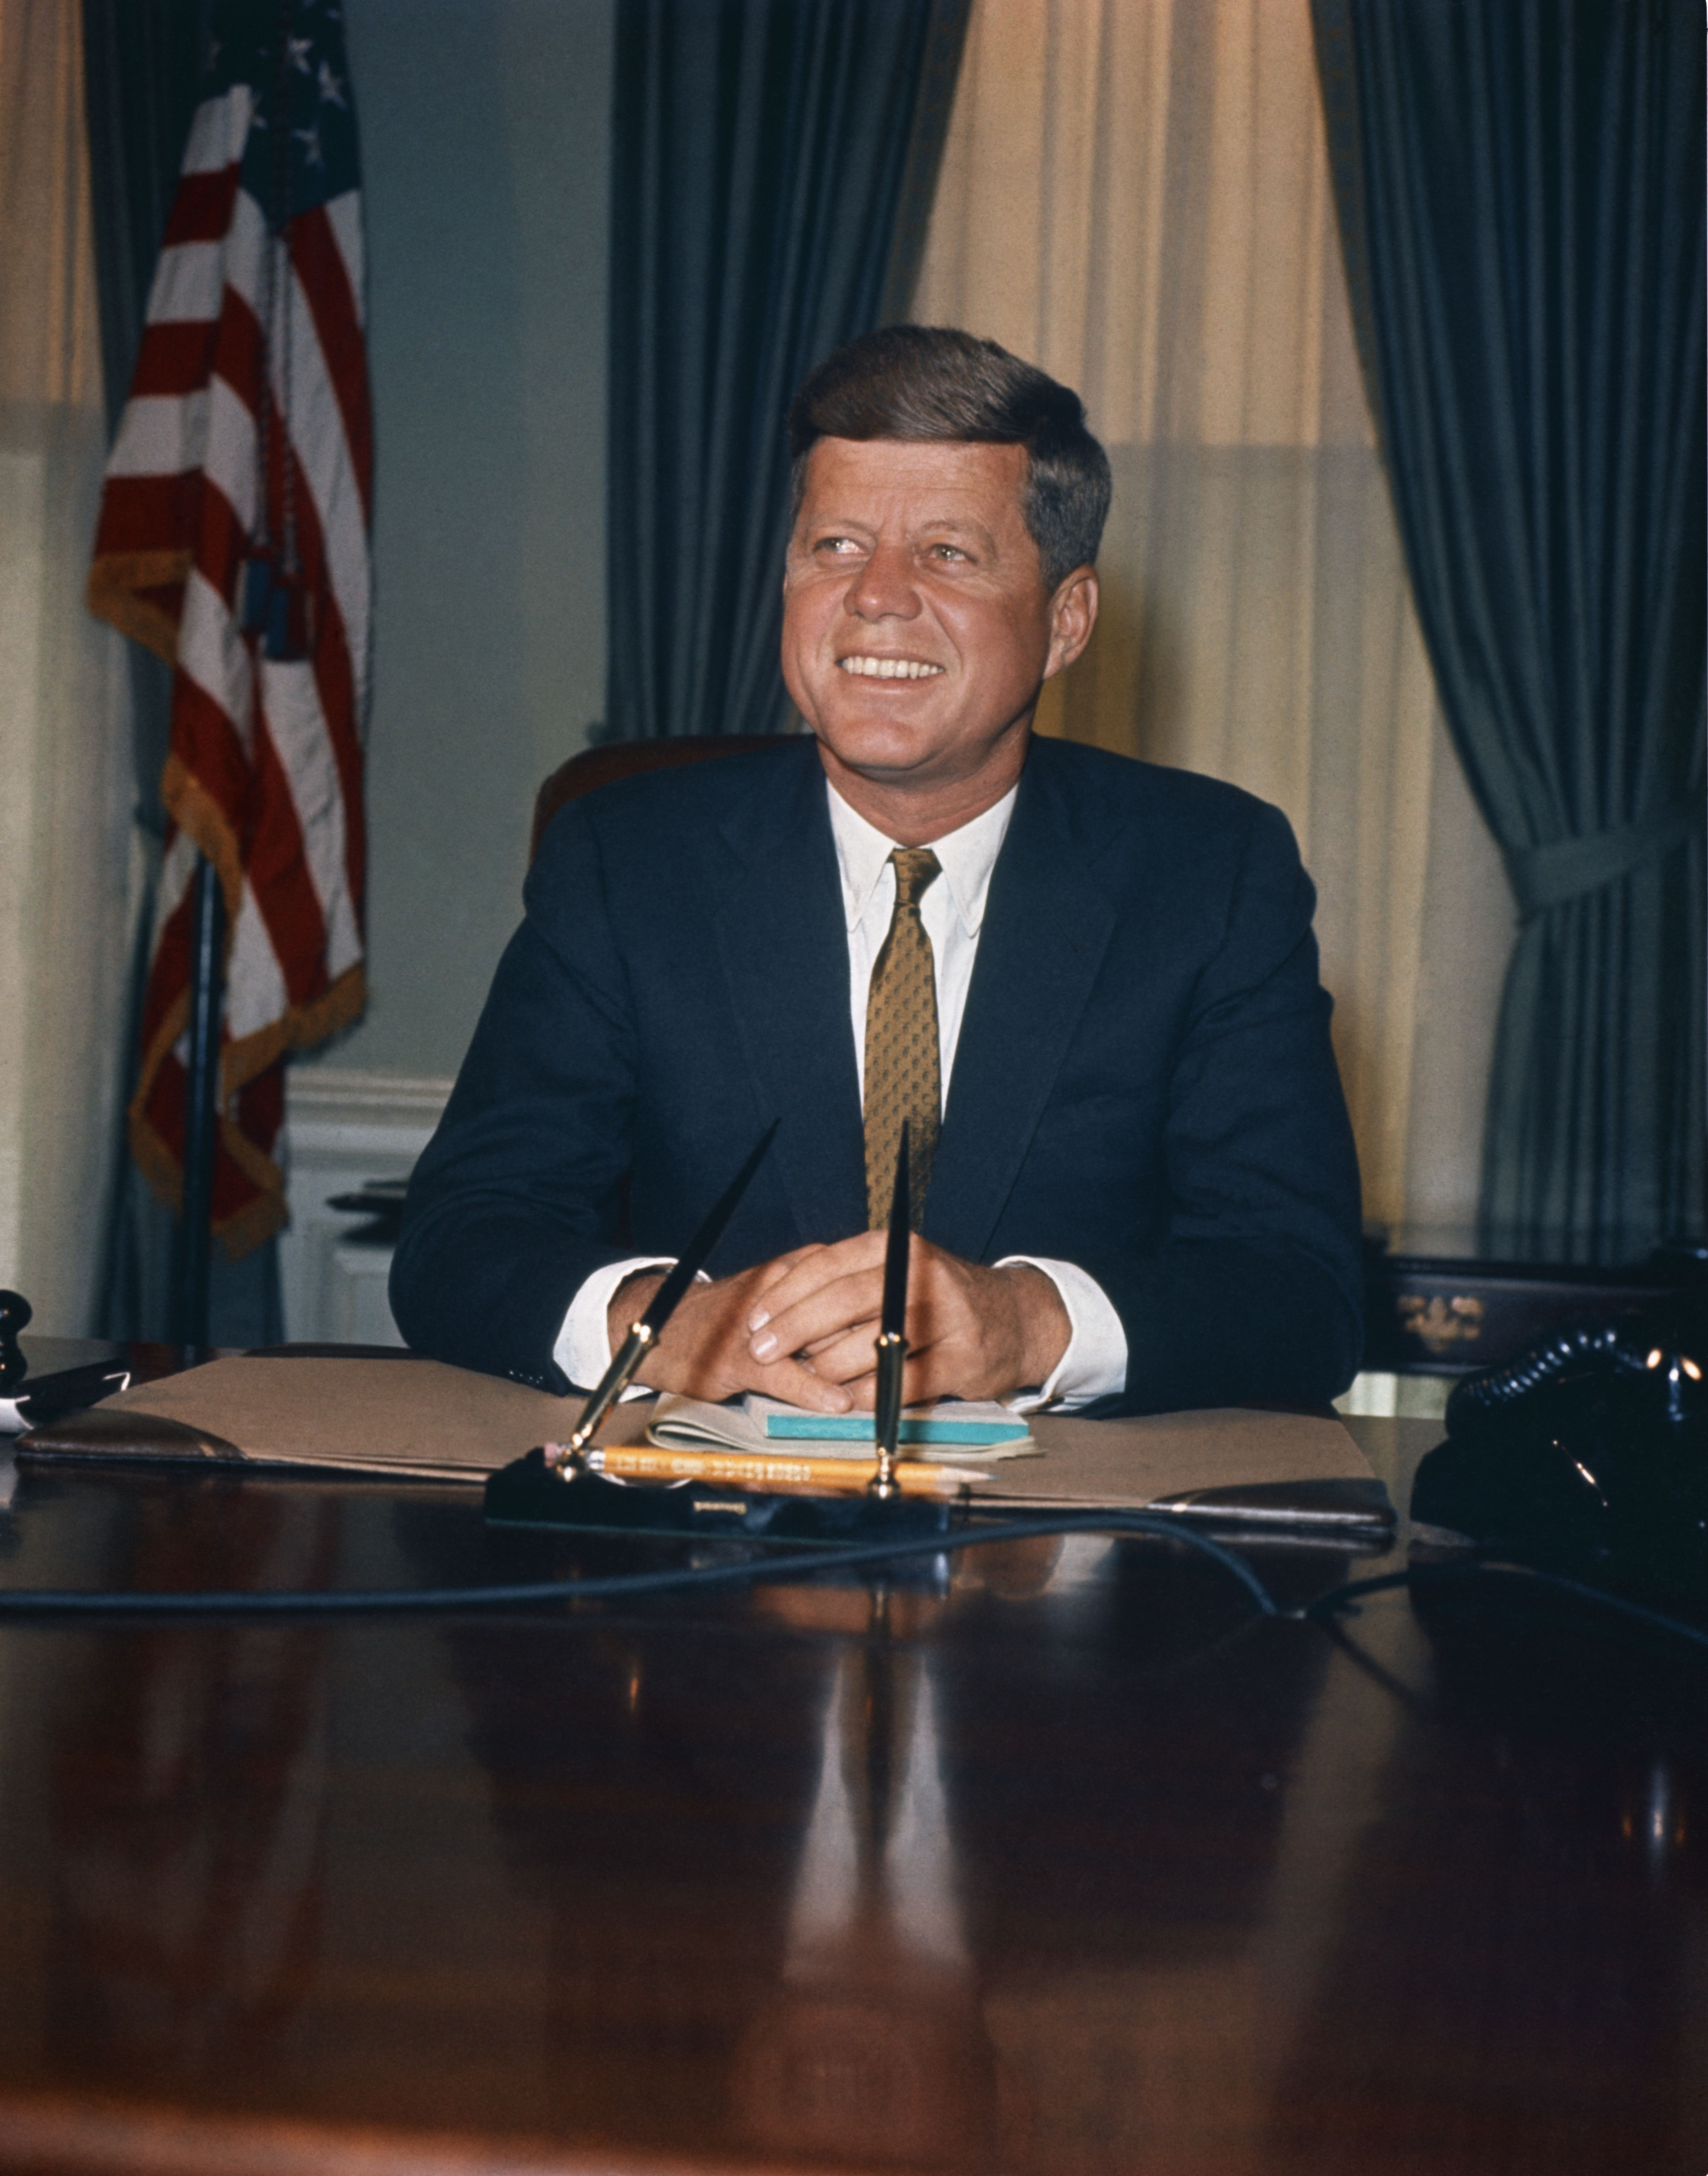 President JFK in White House, early 1960s| Photo: Getty Images